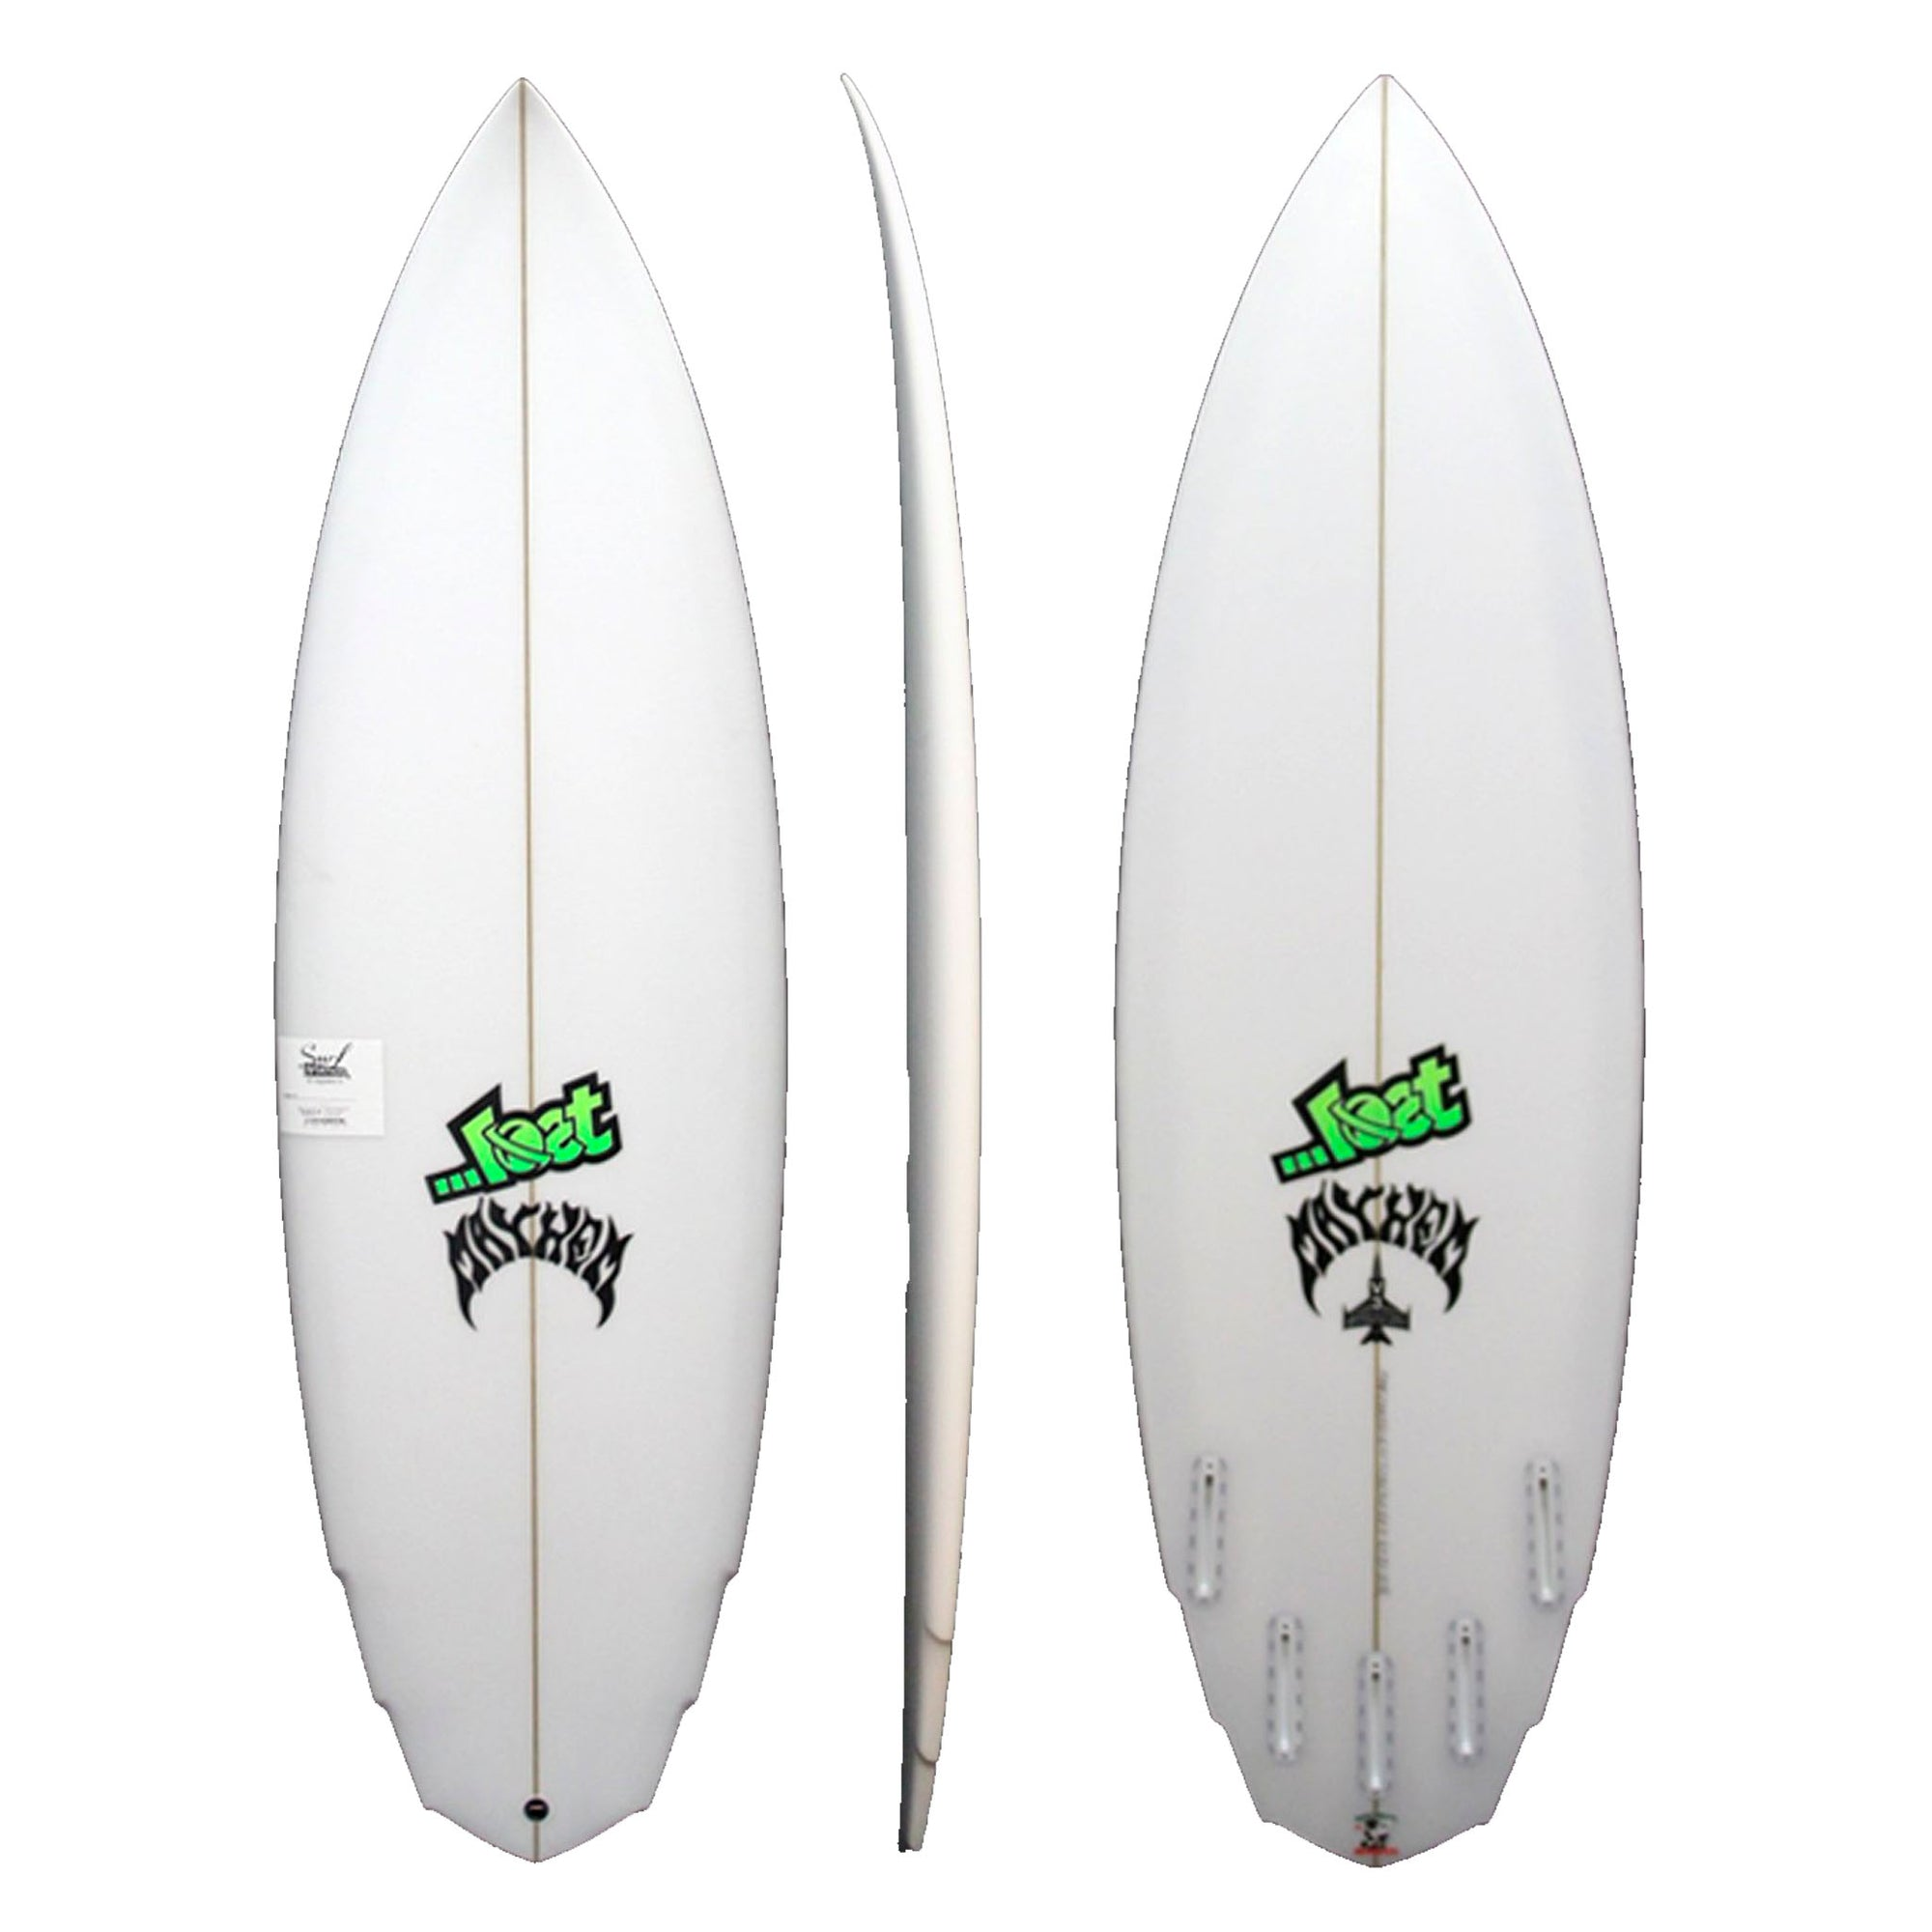 Lost V3 Stealth Surfboard